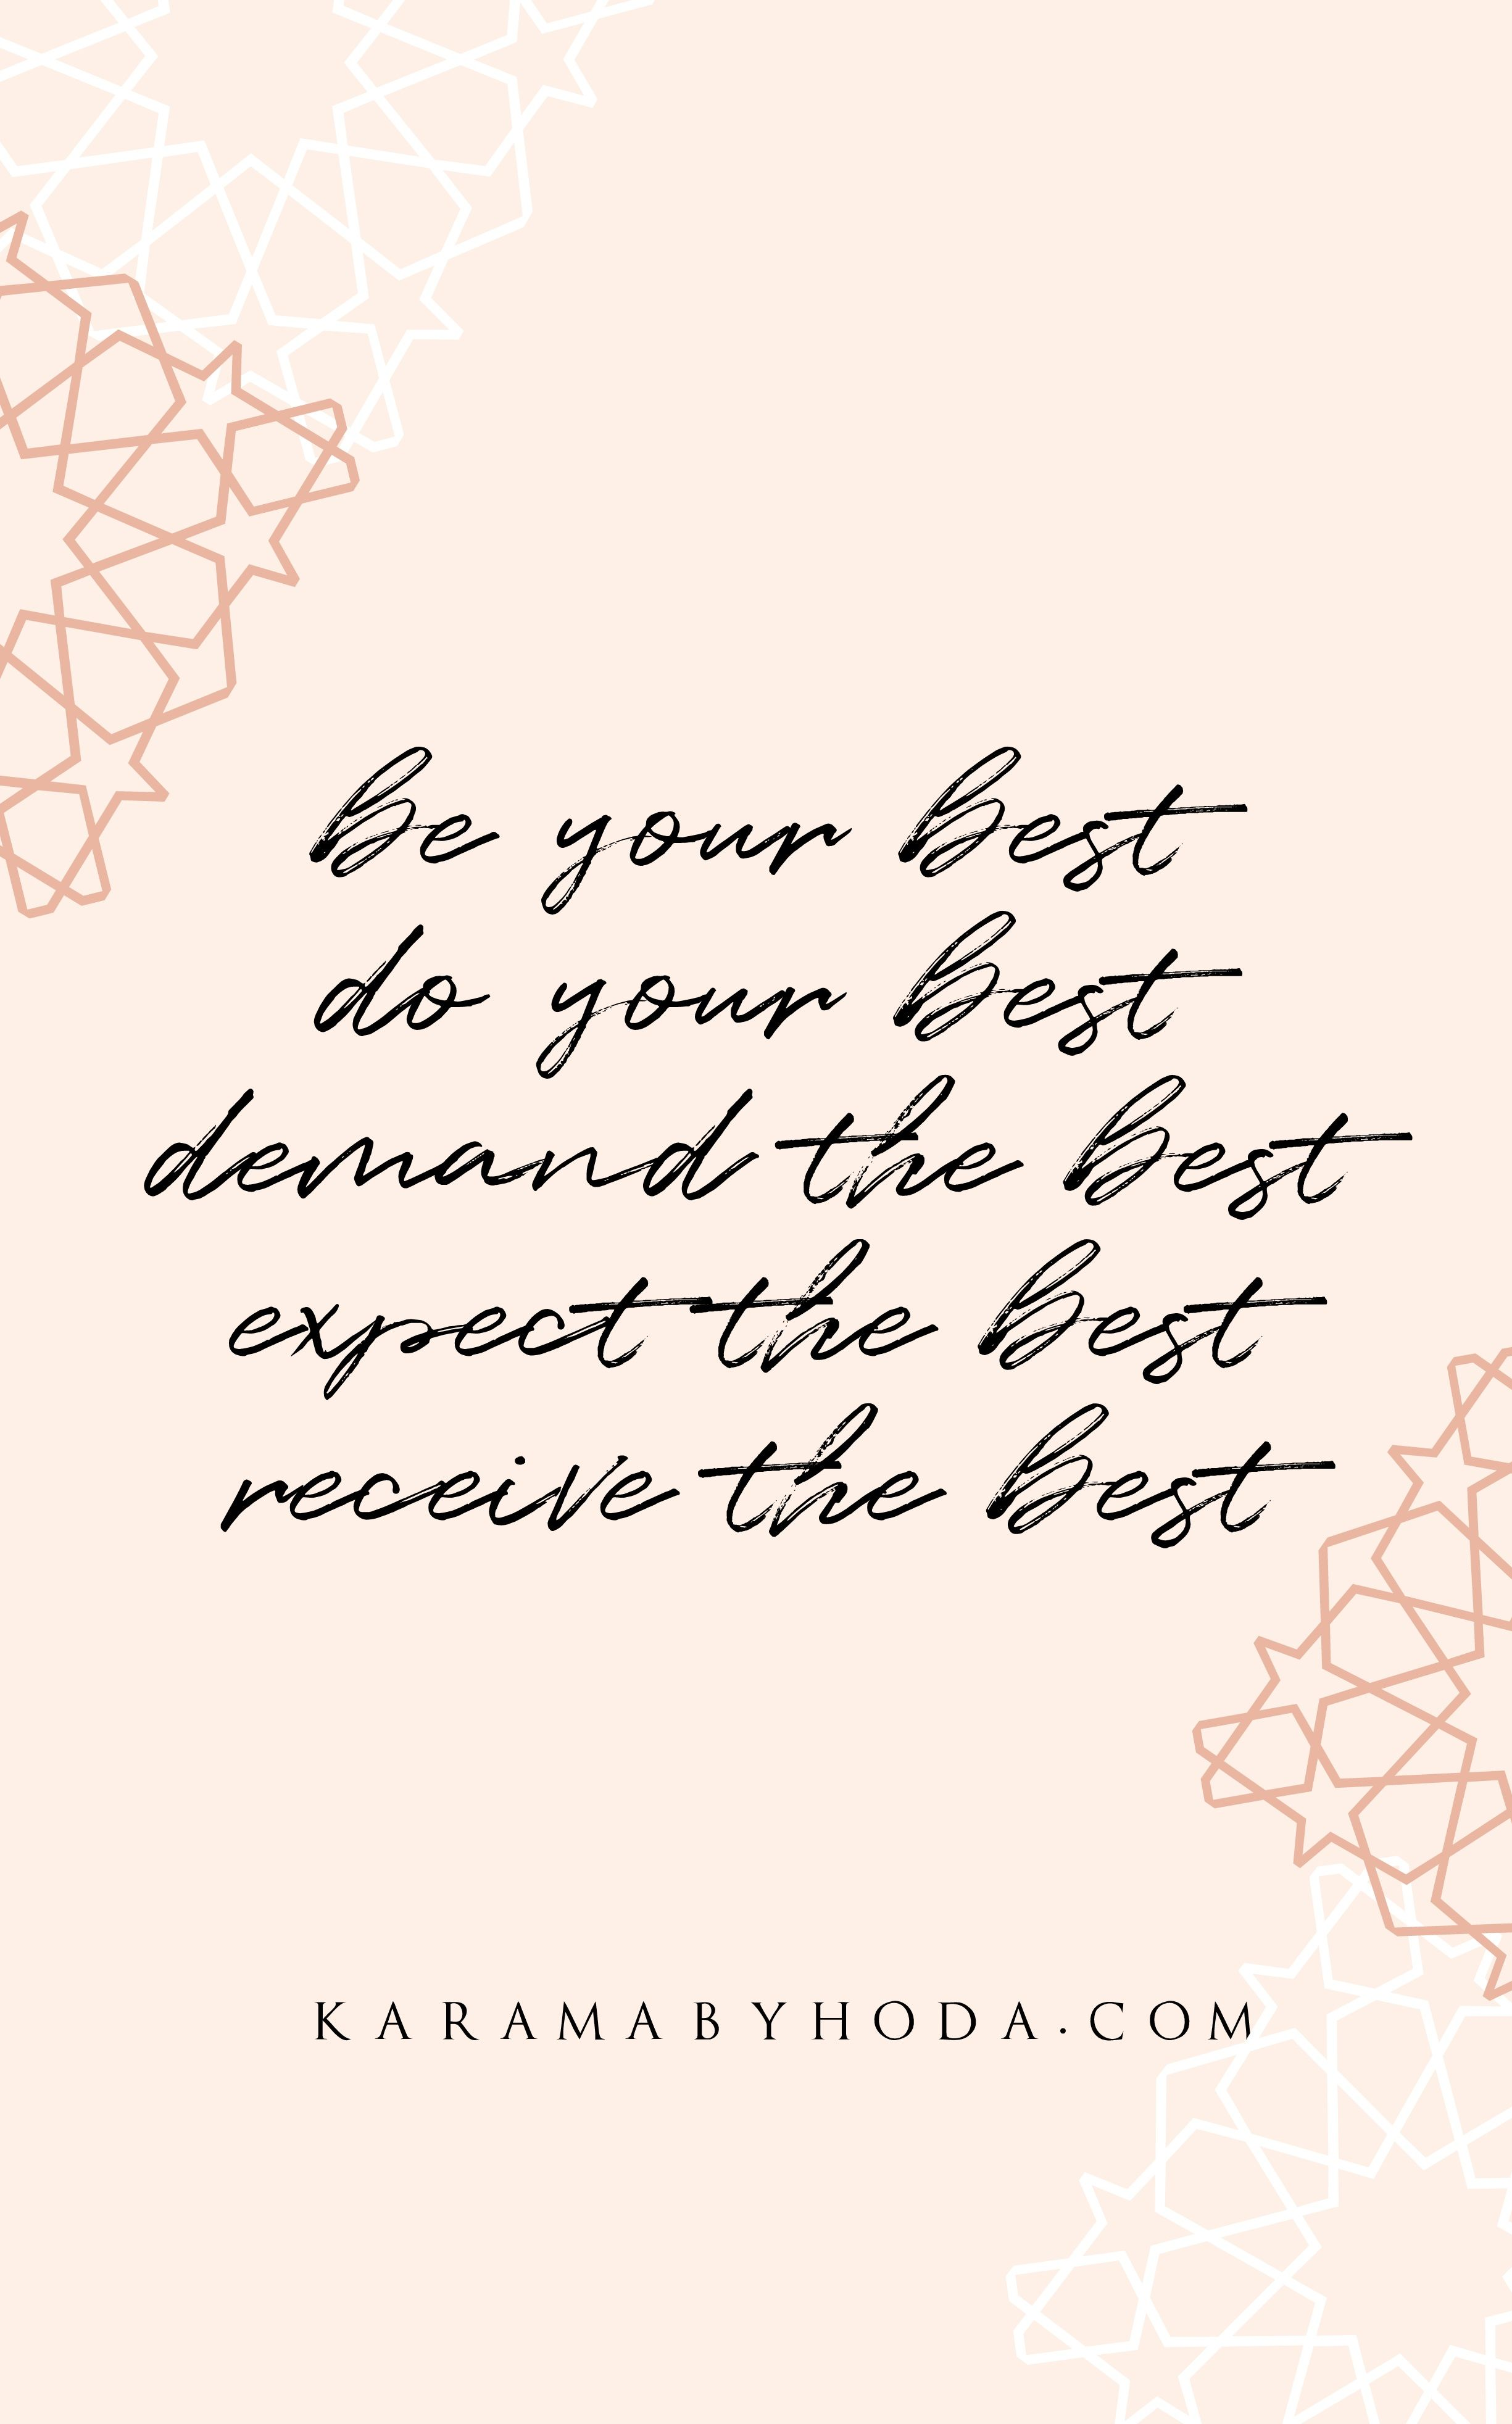 Shop Wall Art Be Your Best Do Your Best Demand The Best Expect The Best Receive The Best Girlbossq Good Work Quotes Best Self Quotes Do Better Quotes